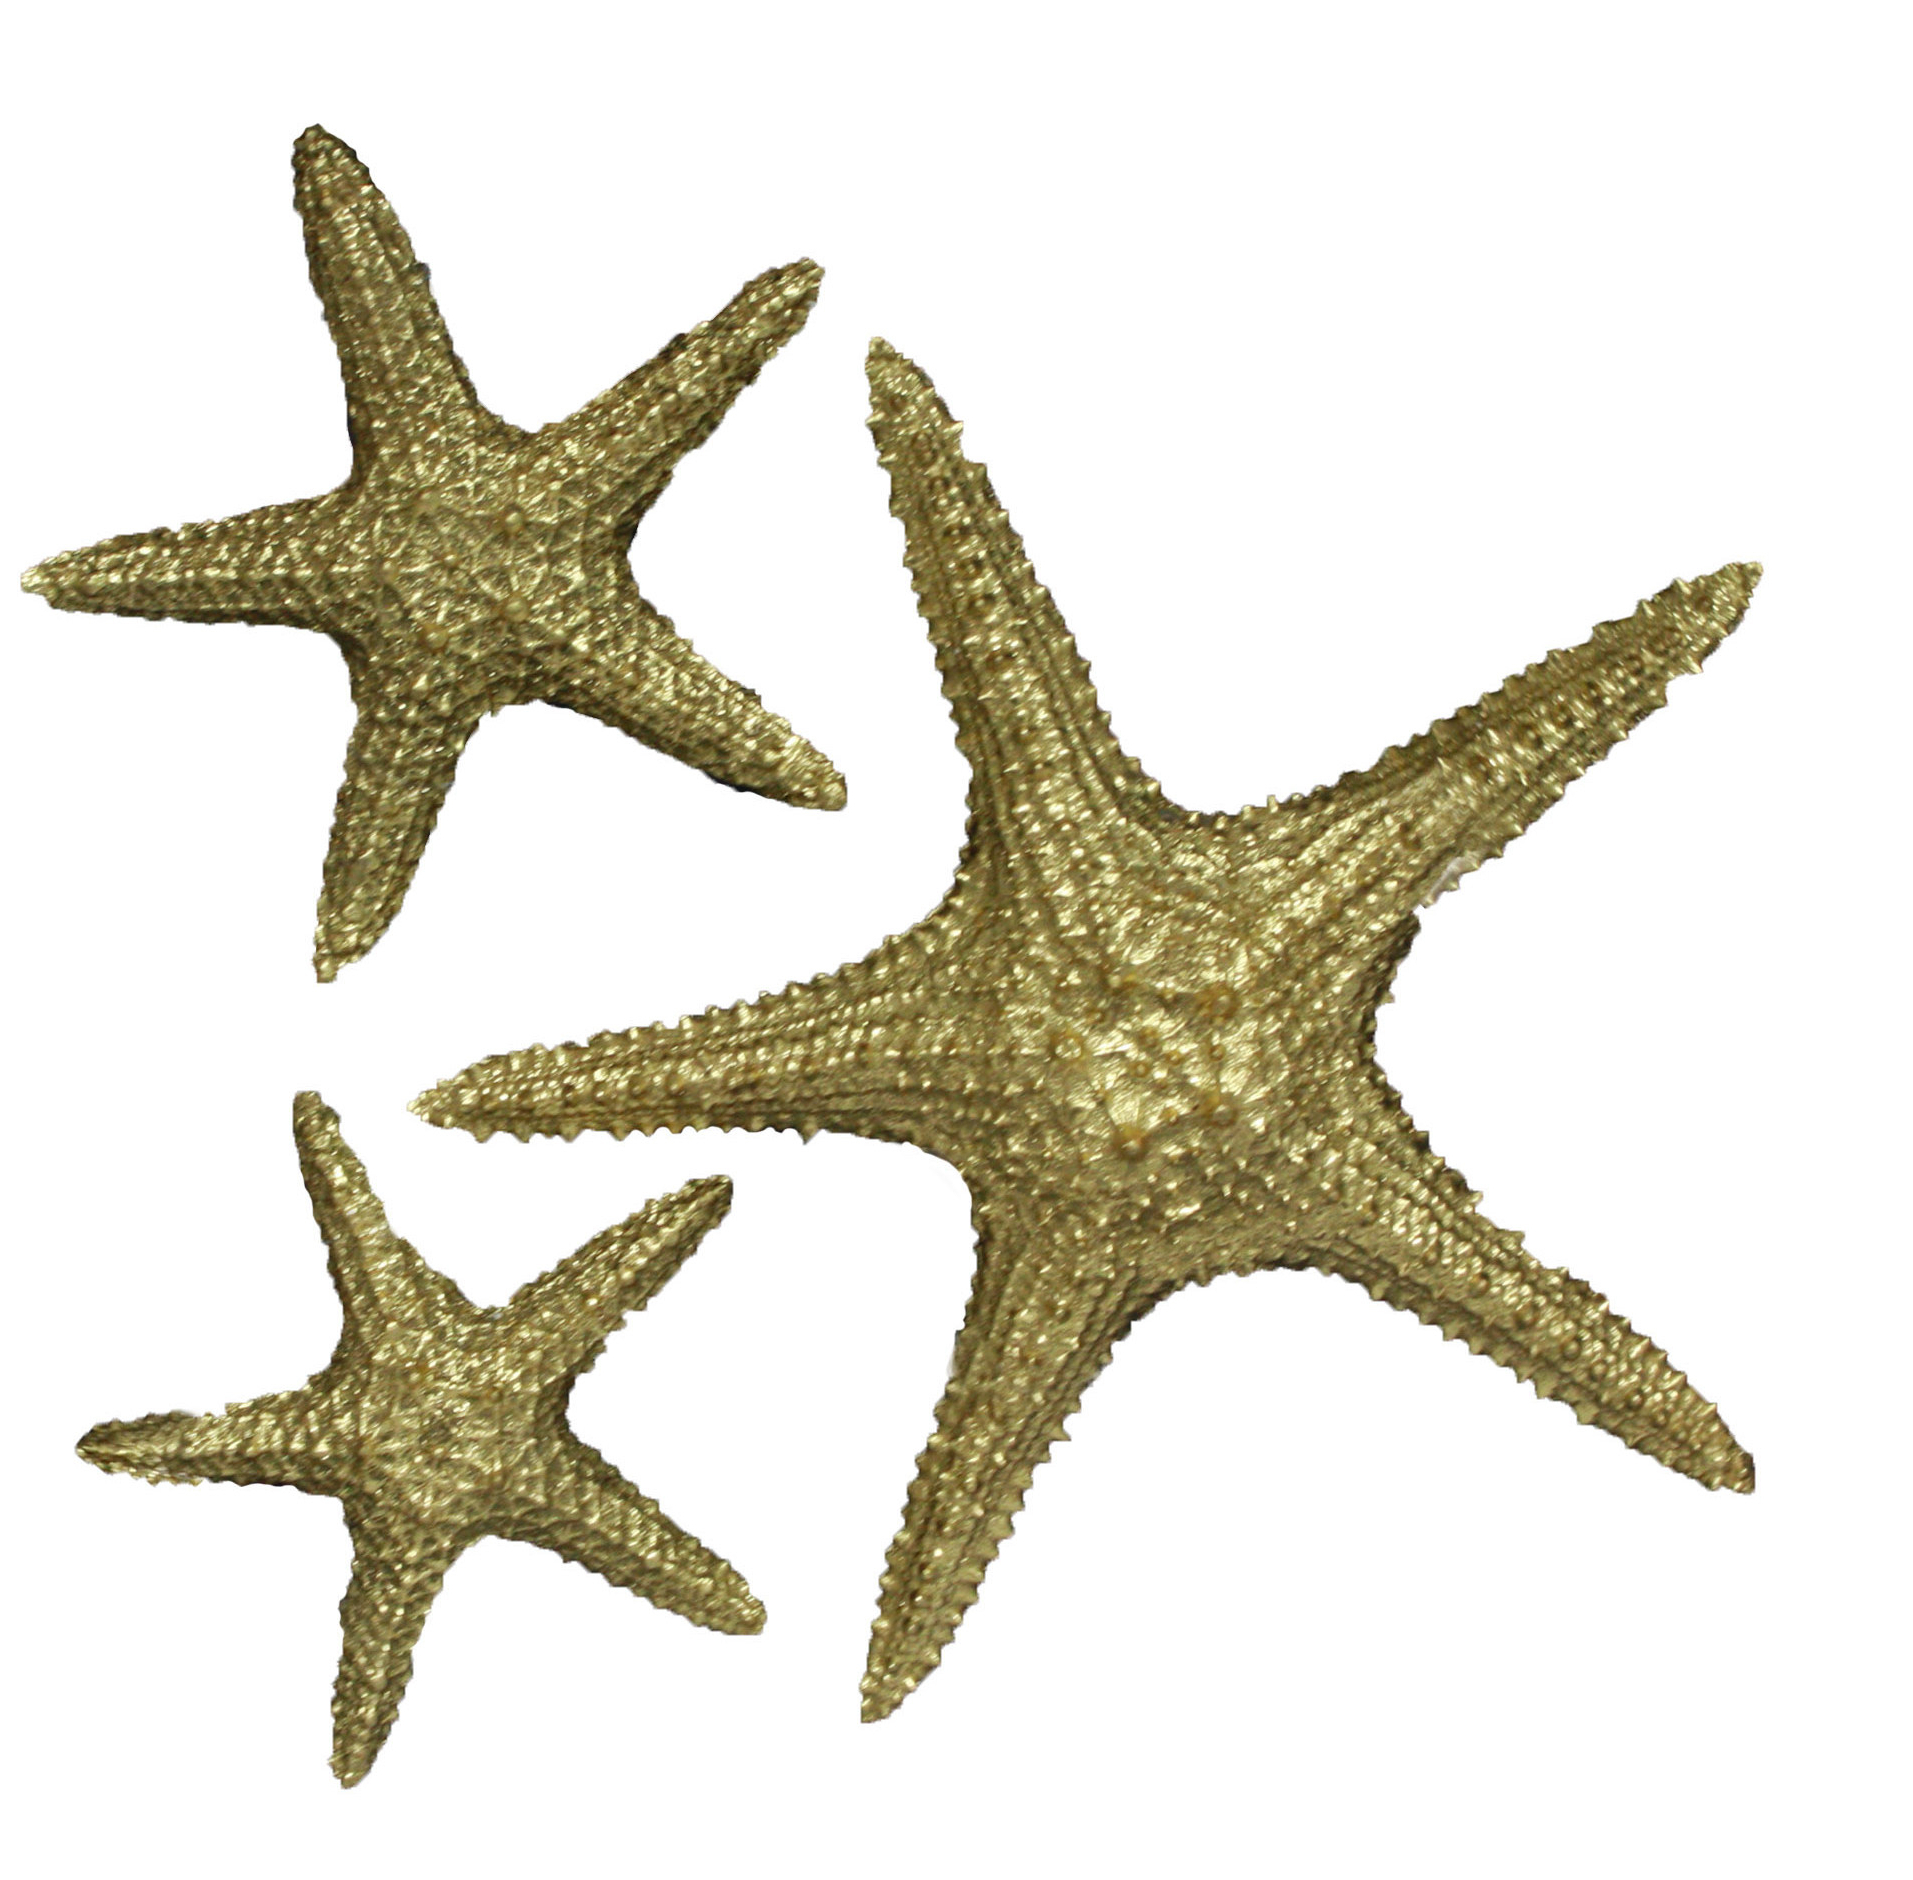 Fetco Home Decor Yelton 3 Piece Starfish Wall Décor Set (View 5 of 20)